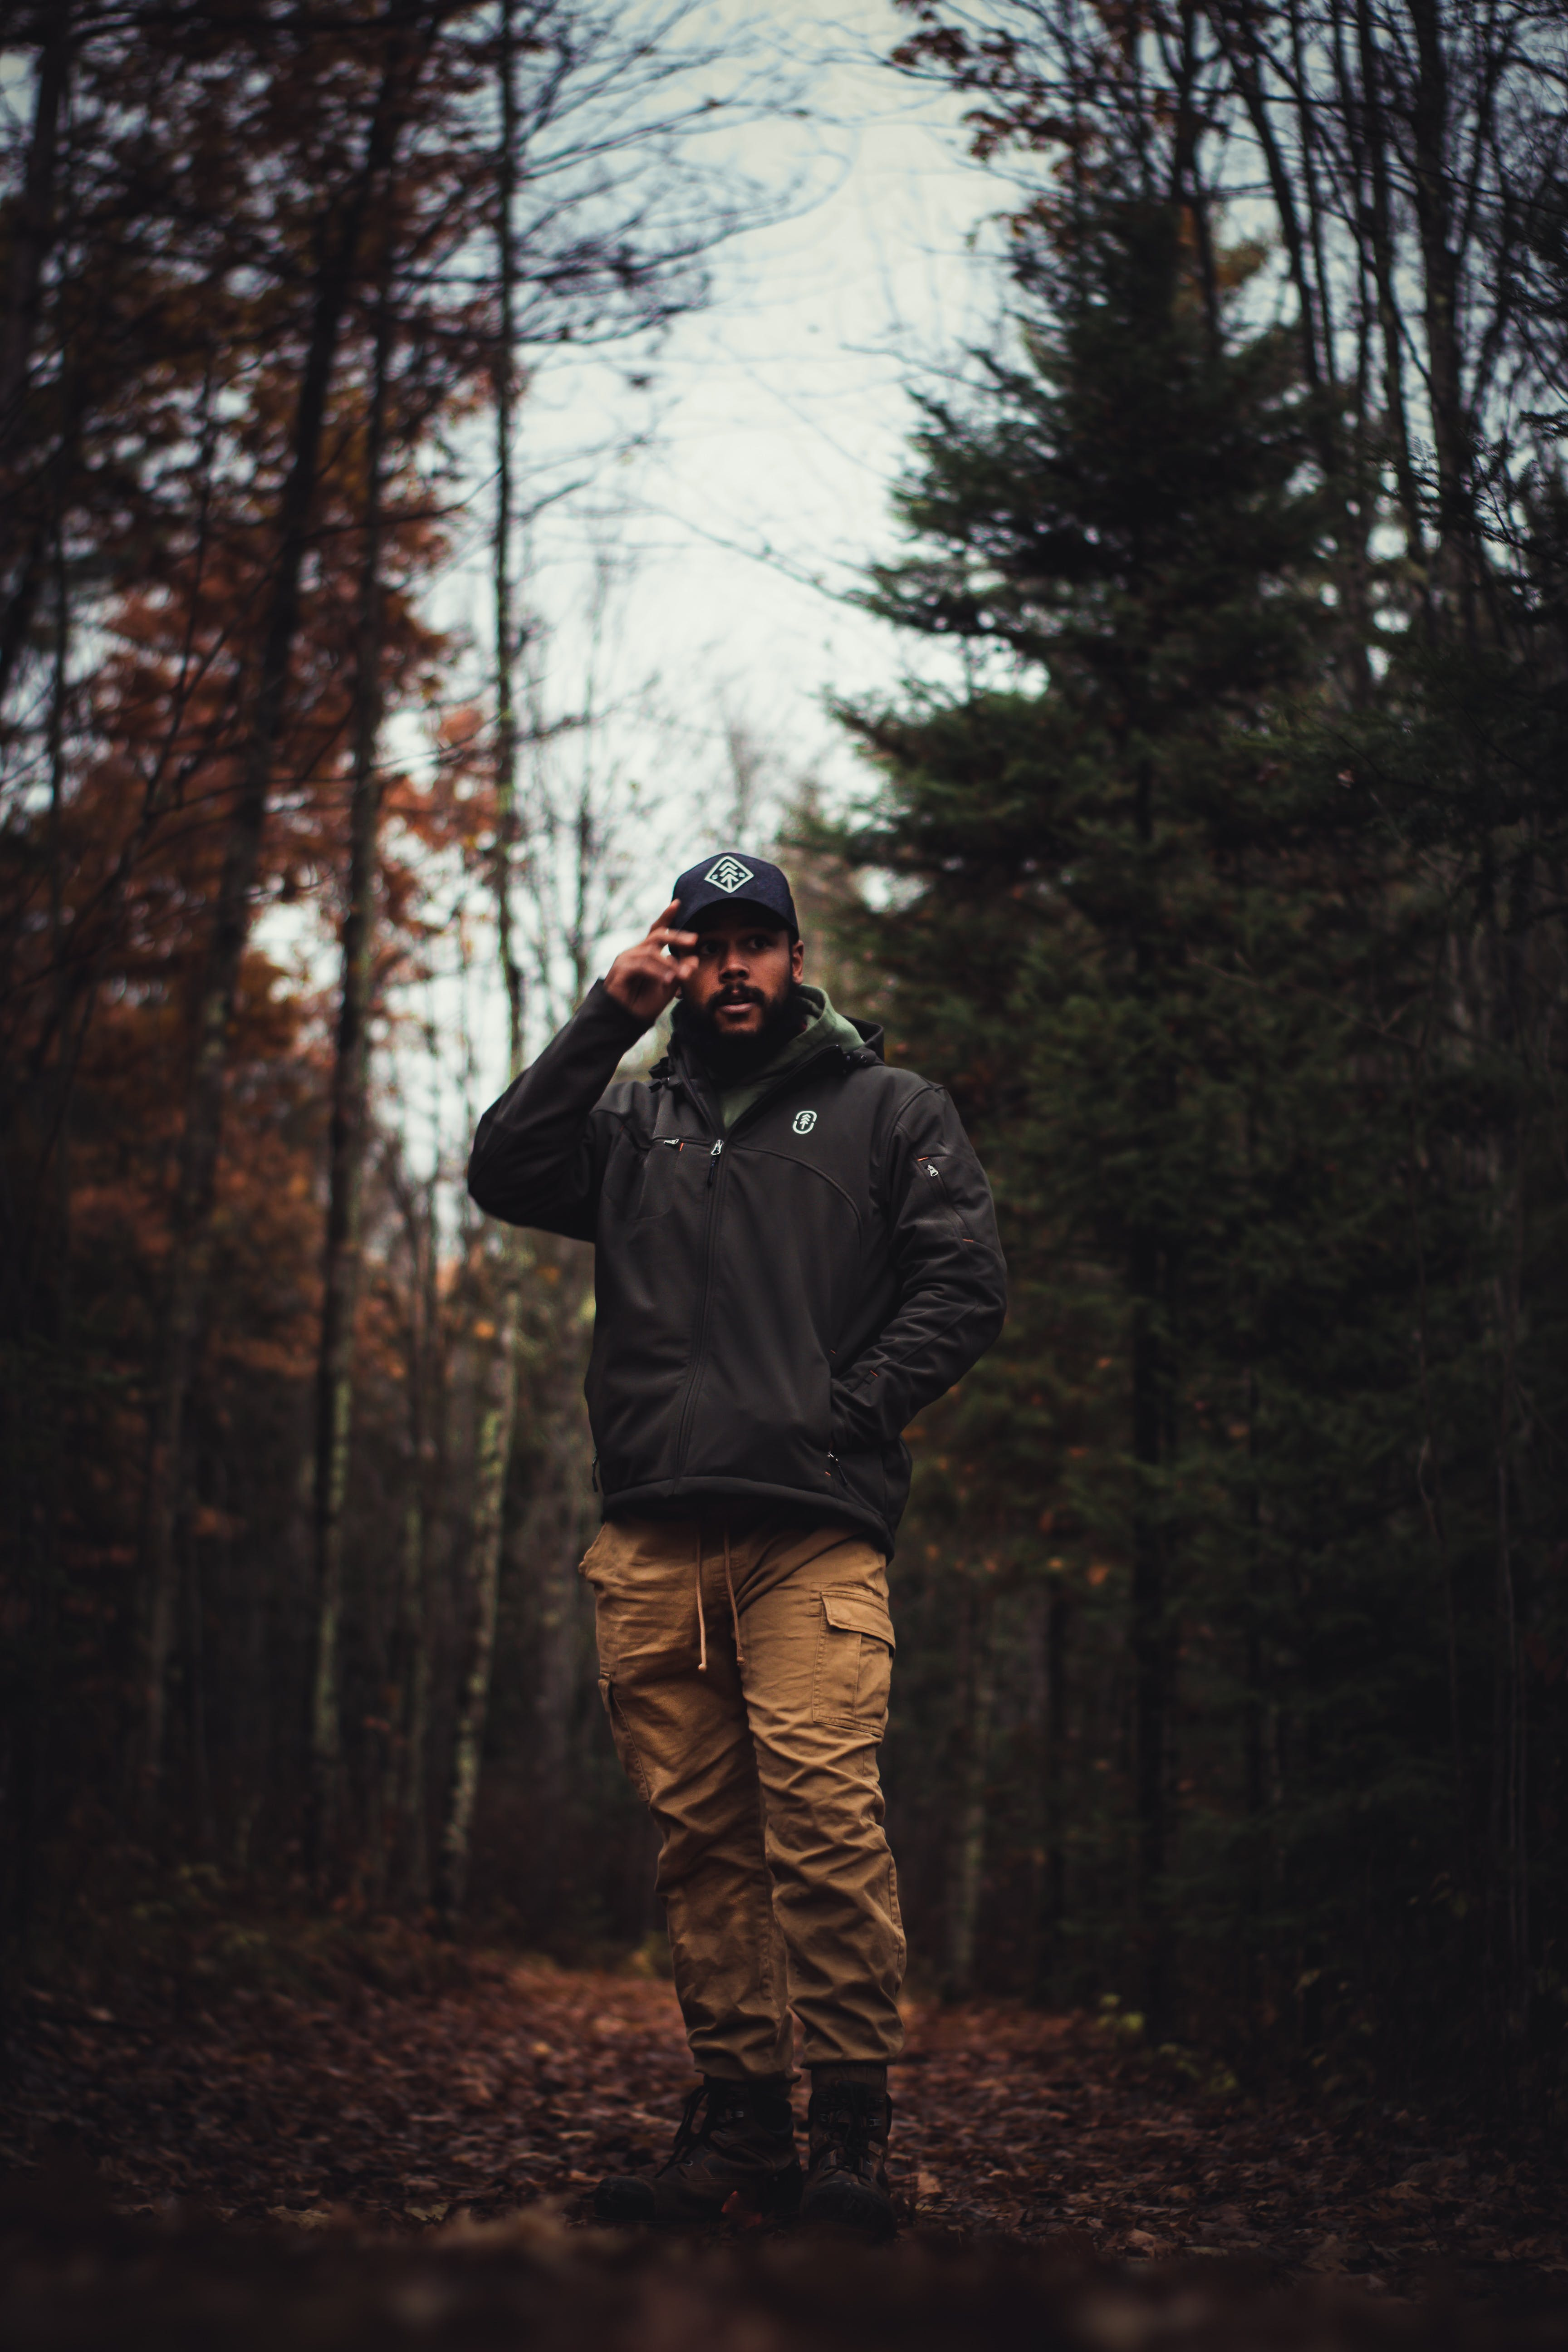 Man Standing on Ground Surrounded by Trees